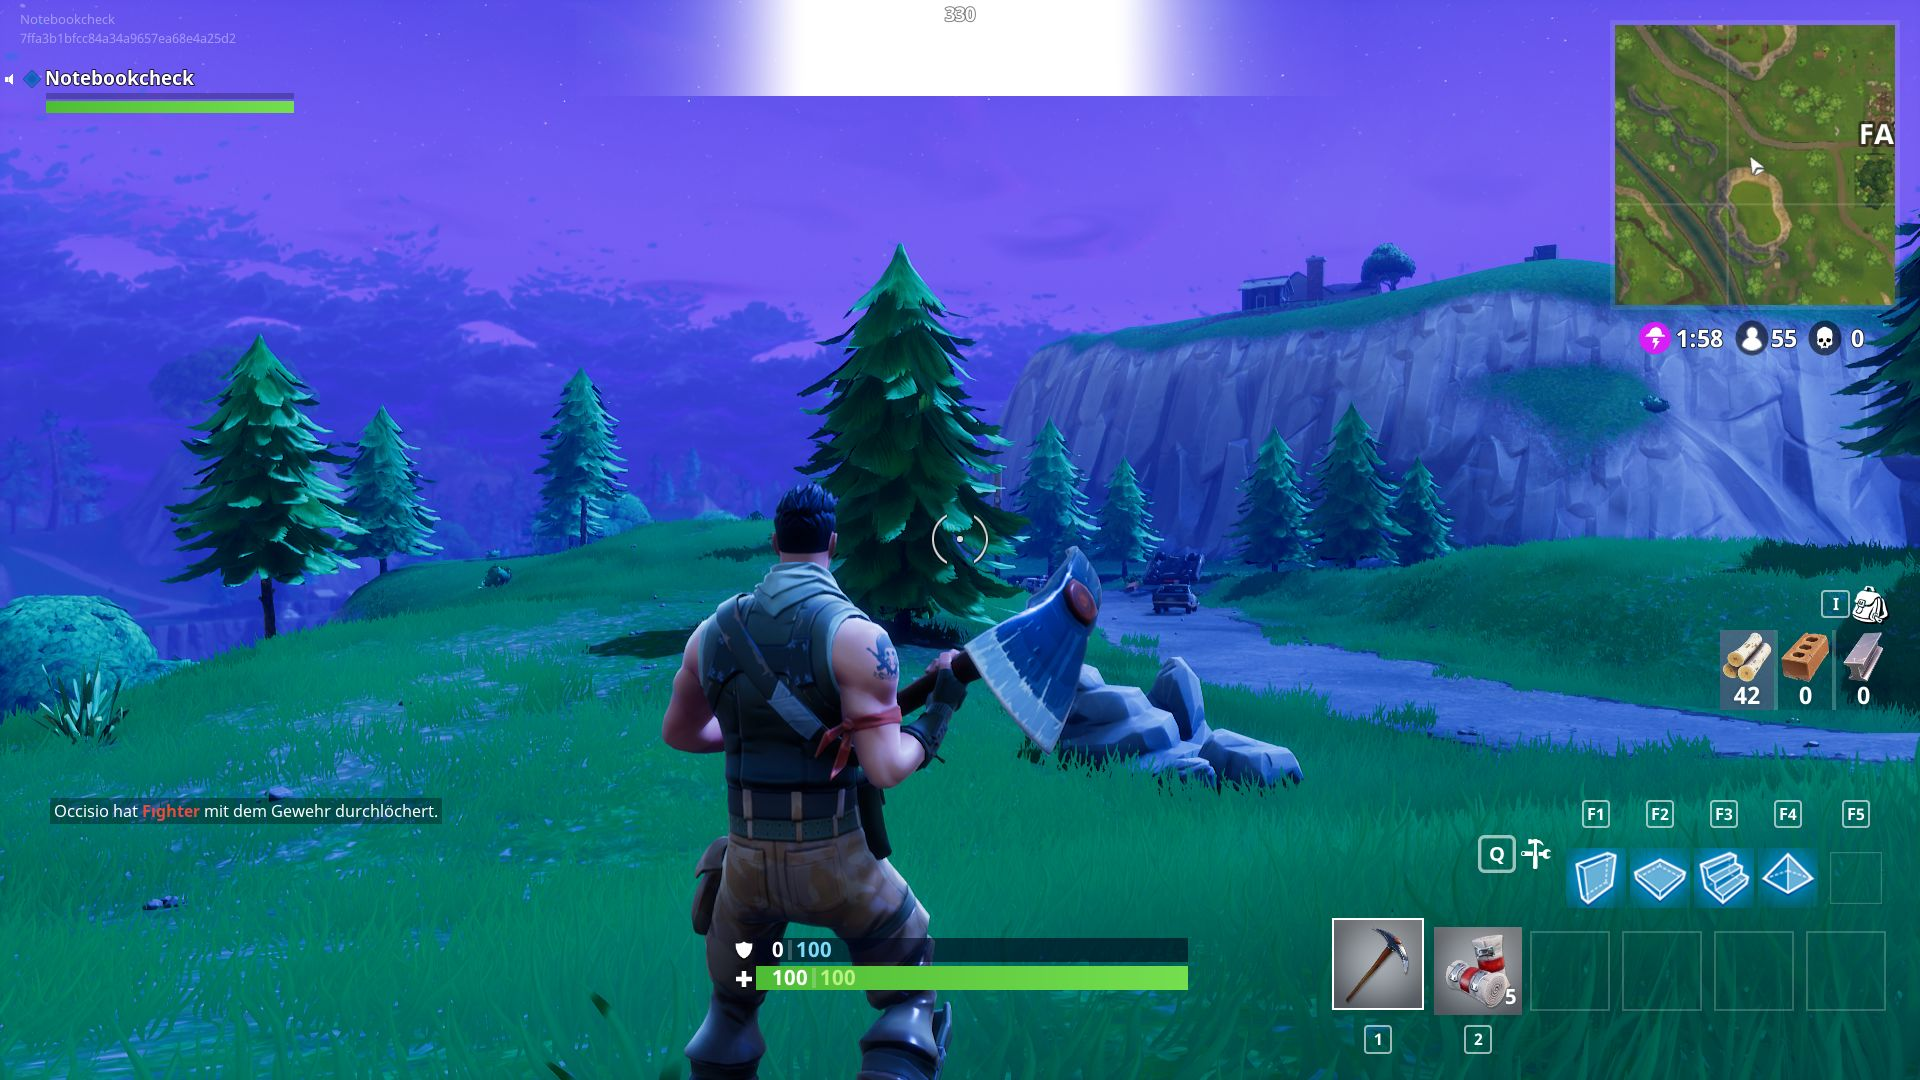 Fortnite Notebook And Desktop Benchmarks Notebookcheck